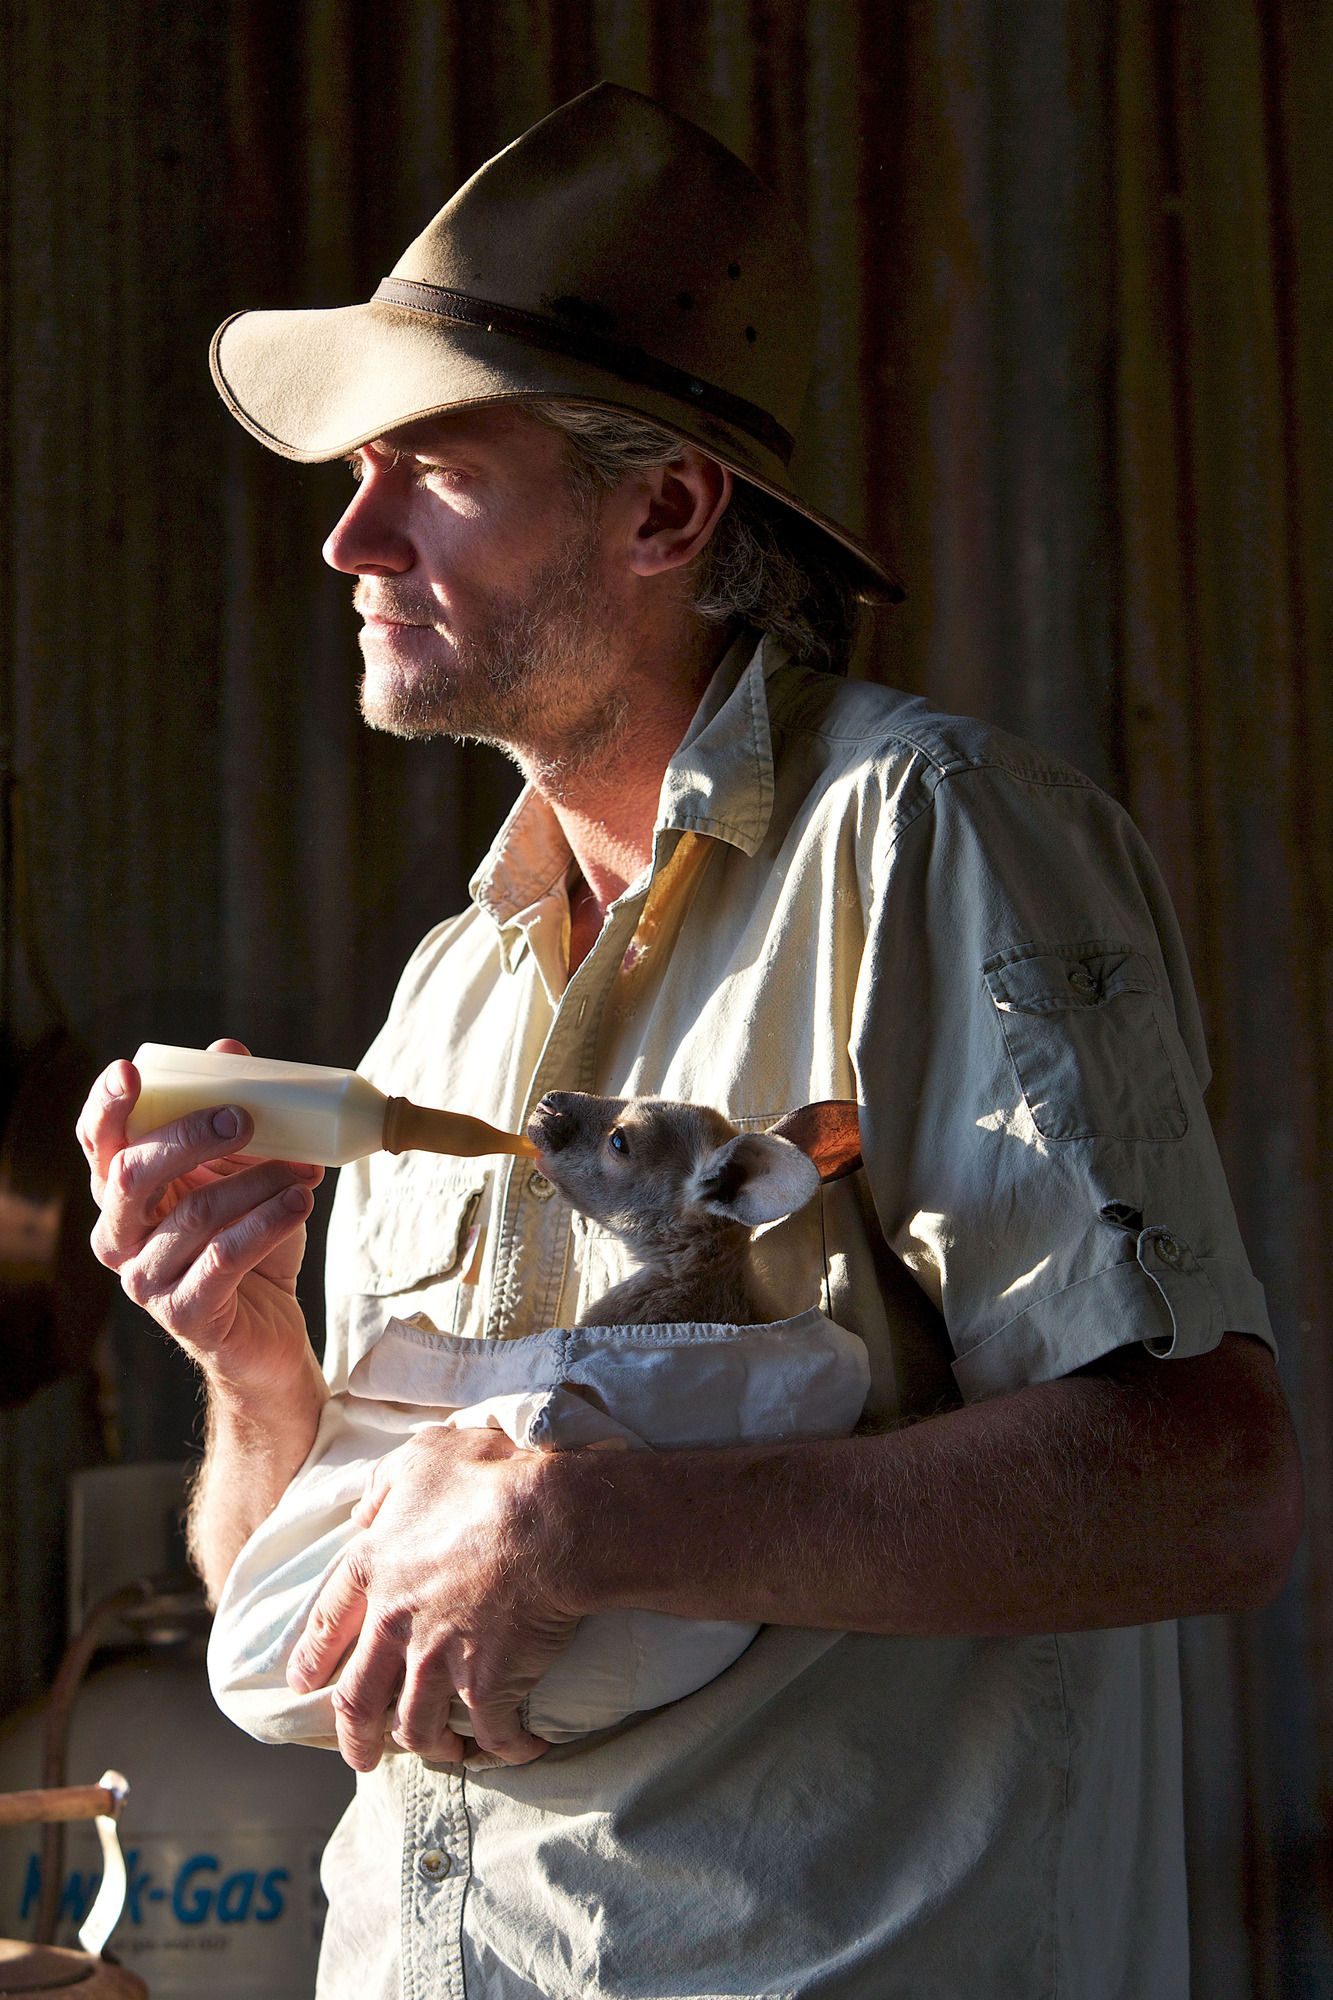 Kangaroo Dundee: Meet a man who lives all on his own in the bush with 'roos